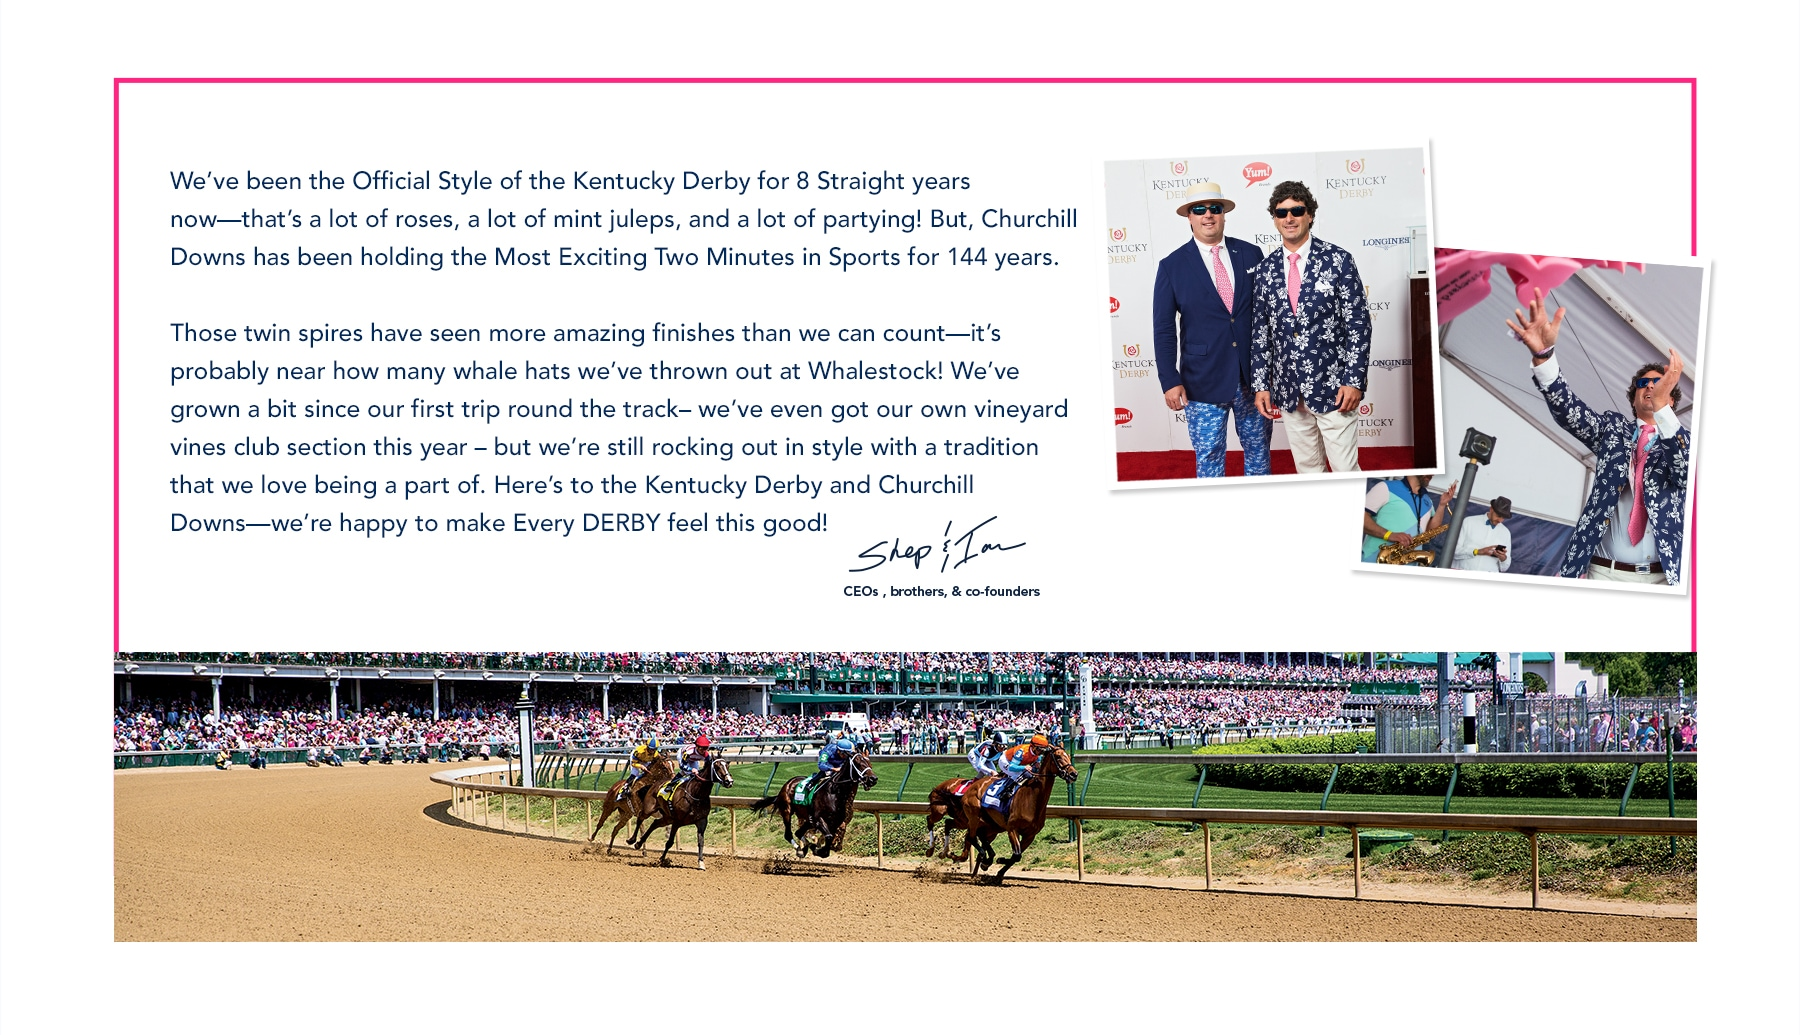 We've been the Official Style of the Kentucky Derby for 8 Straight years now—that's a lot of roses, a lot of mint juleps, and a lot of partying! But, Churchill Downs has been holding the Most Exciting Two Minutes in Sports for 144 years. Those twin spires have seen more amazing finishes than we can count—it's probably near how many whale hats we've thrown out at Whalestock! We've grown a bit since our first trip round the track– we've even got our own vineyard vines club section this year – but we're still rocking out in style with a tradition that we love being a part of. Here's to the Kentucky Derby and Churchill Downs—we're happy to make Every DERBY feel this good! -Shep & Ian. CEOs, brothers & co-founders.